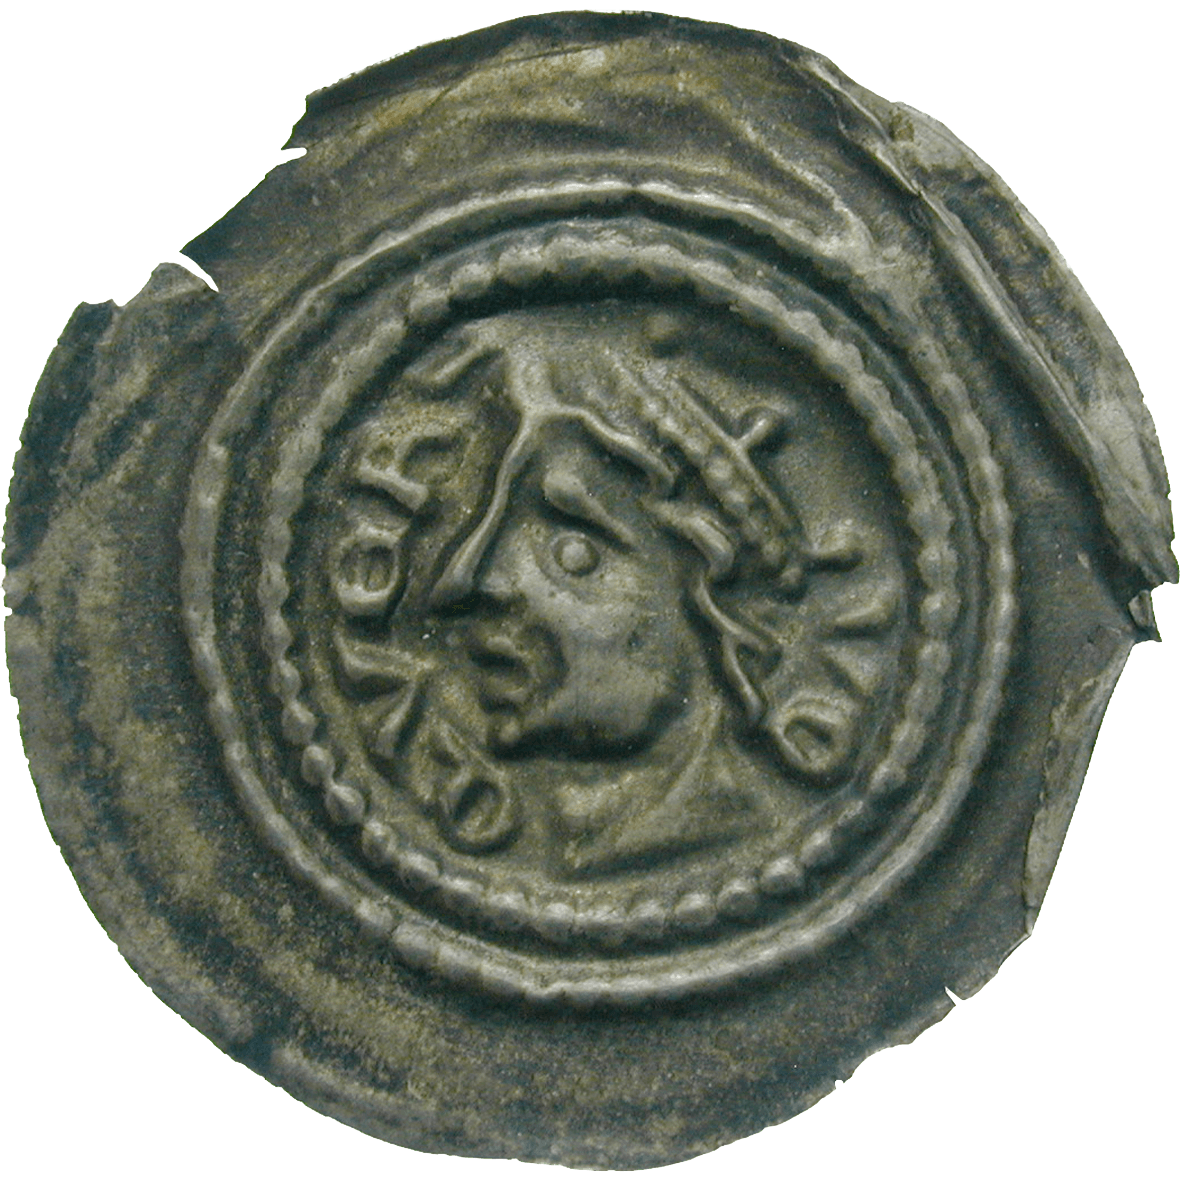 Holy Roman Empire, Duchy of Querfurt, Gebhard VI, Bracteate (obverse)